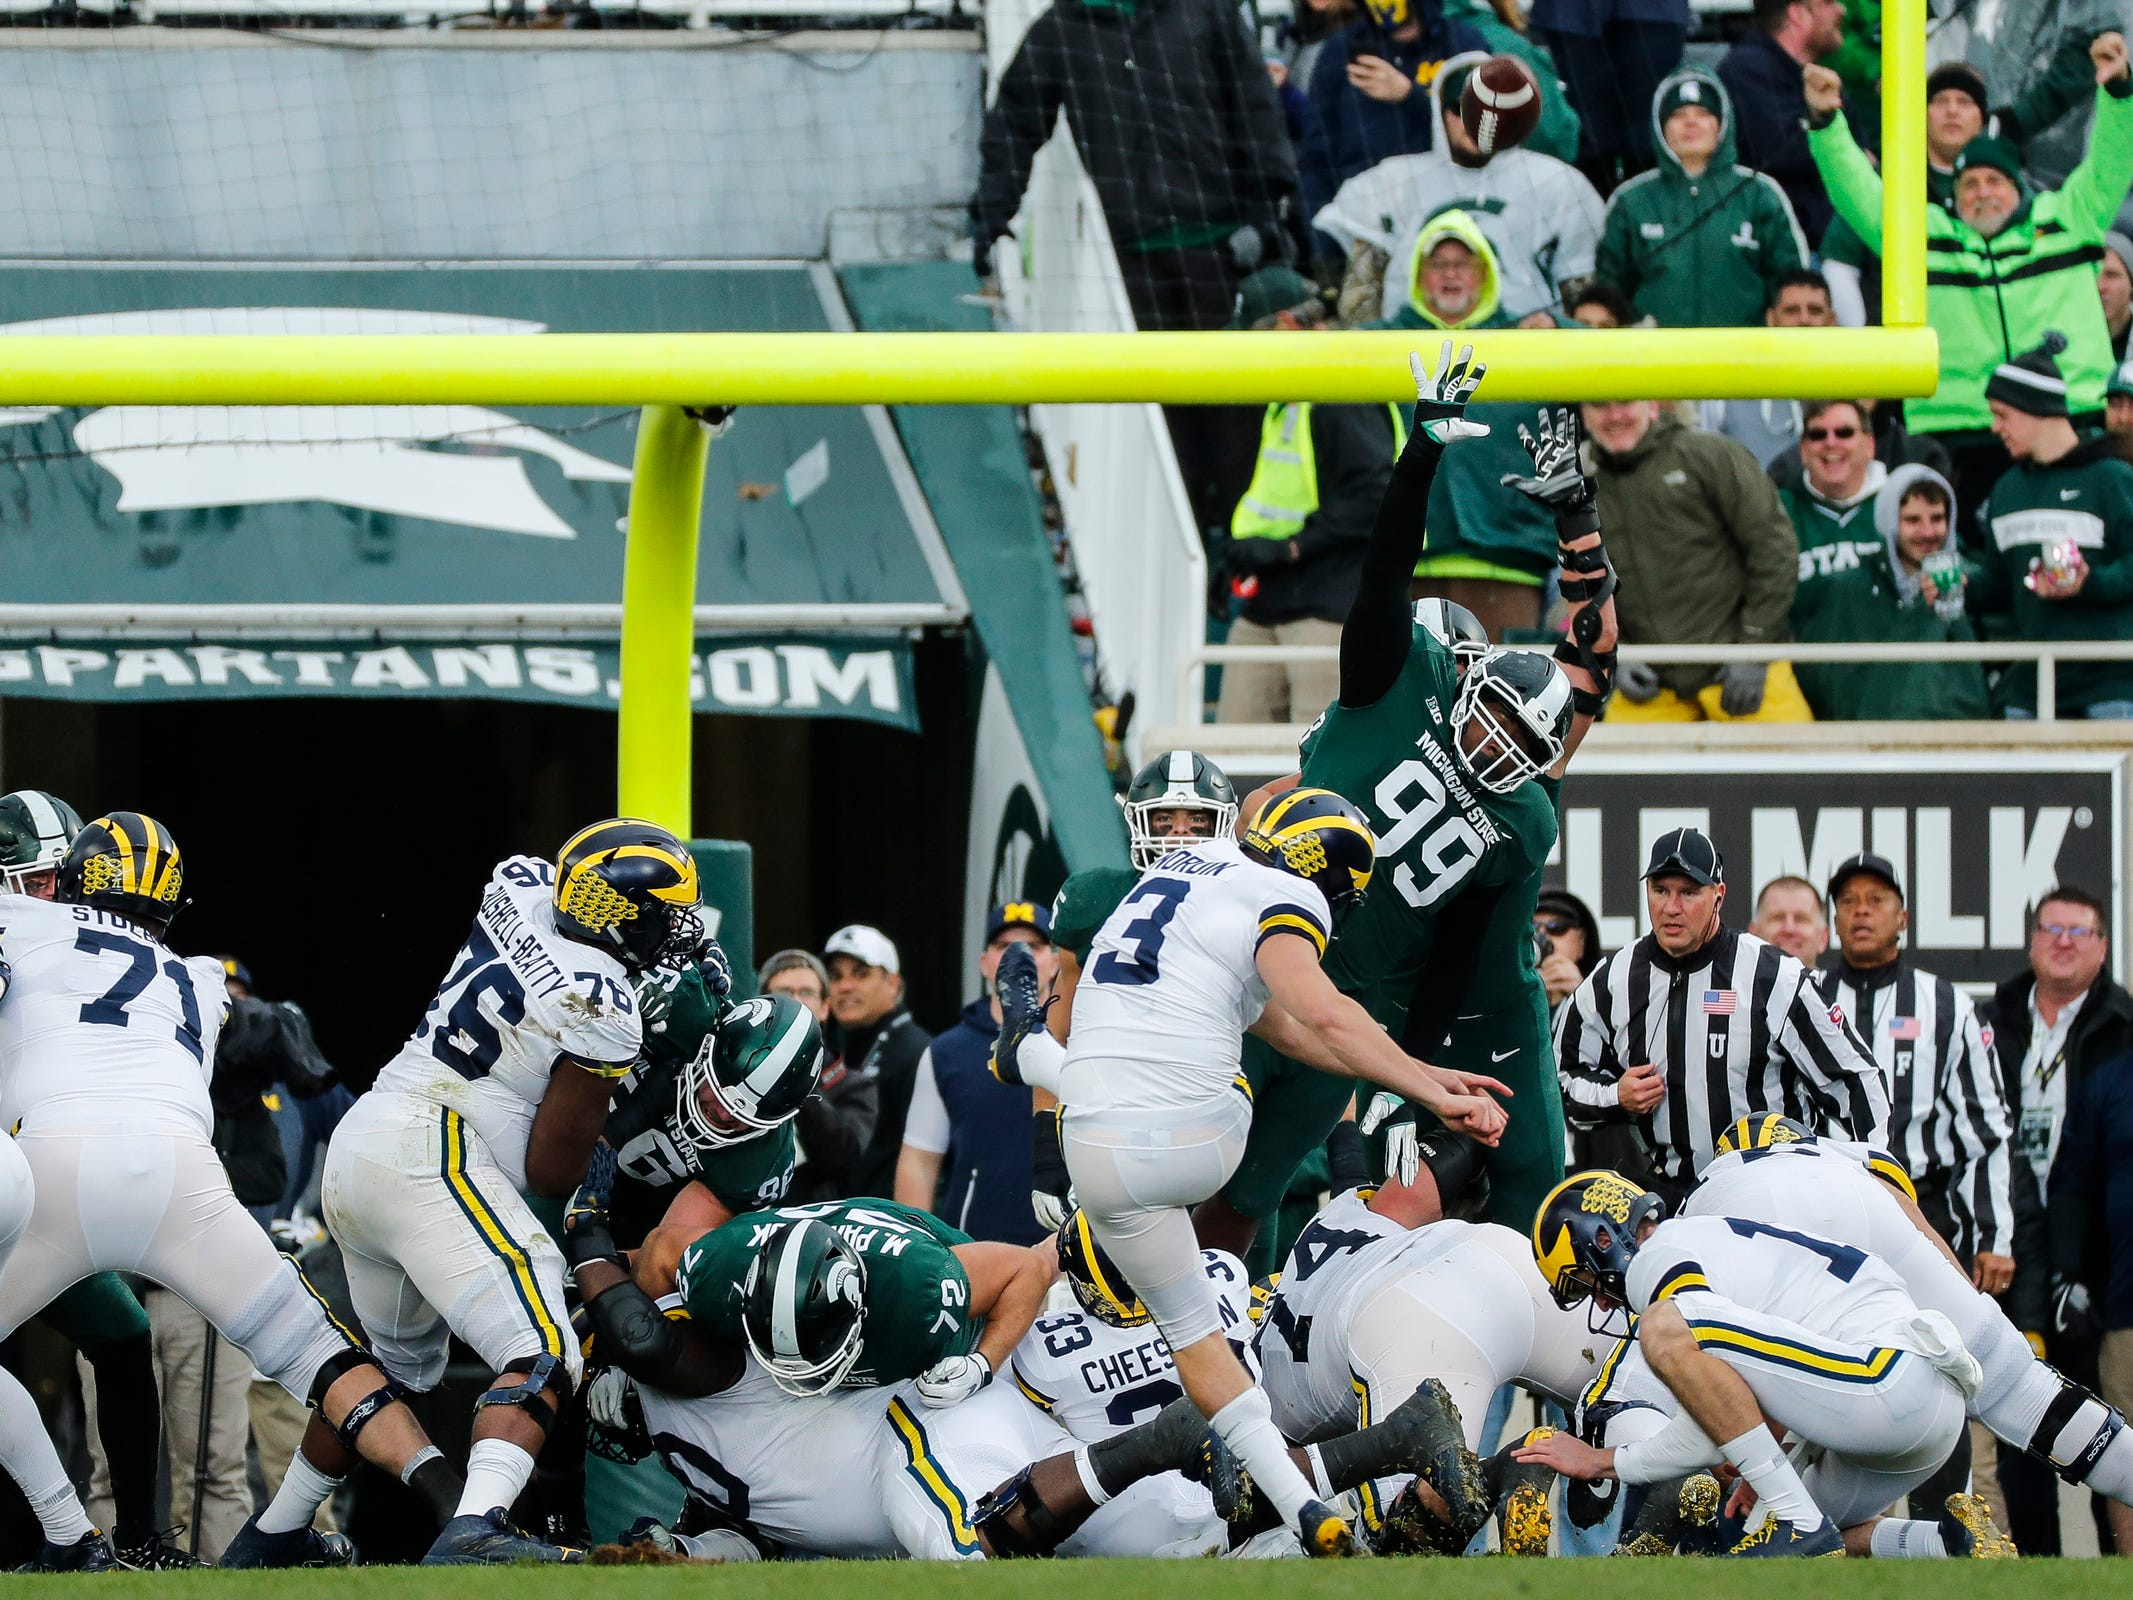 Michigan State defensive tackle Raequan Williams (99) tries to block an extra point attempt from Michigan kicker Quinn Nordin during the first half at Spartan Stadium in East Lansing, Saturday, Oct. 20, 2018.